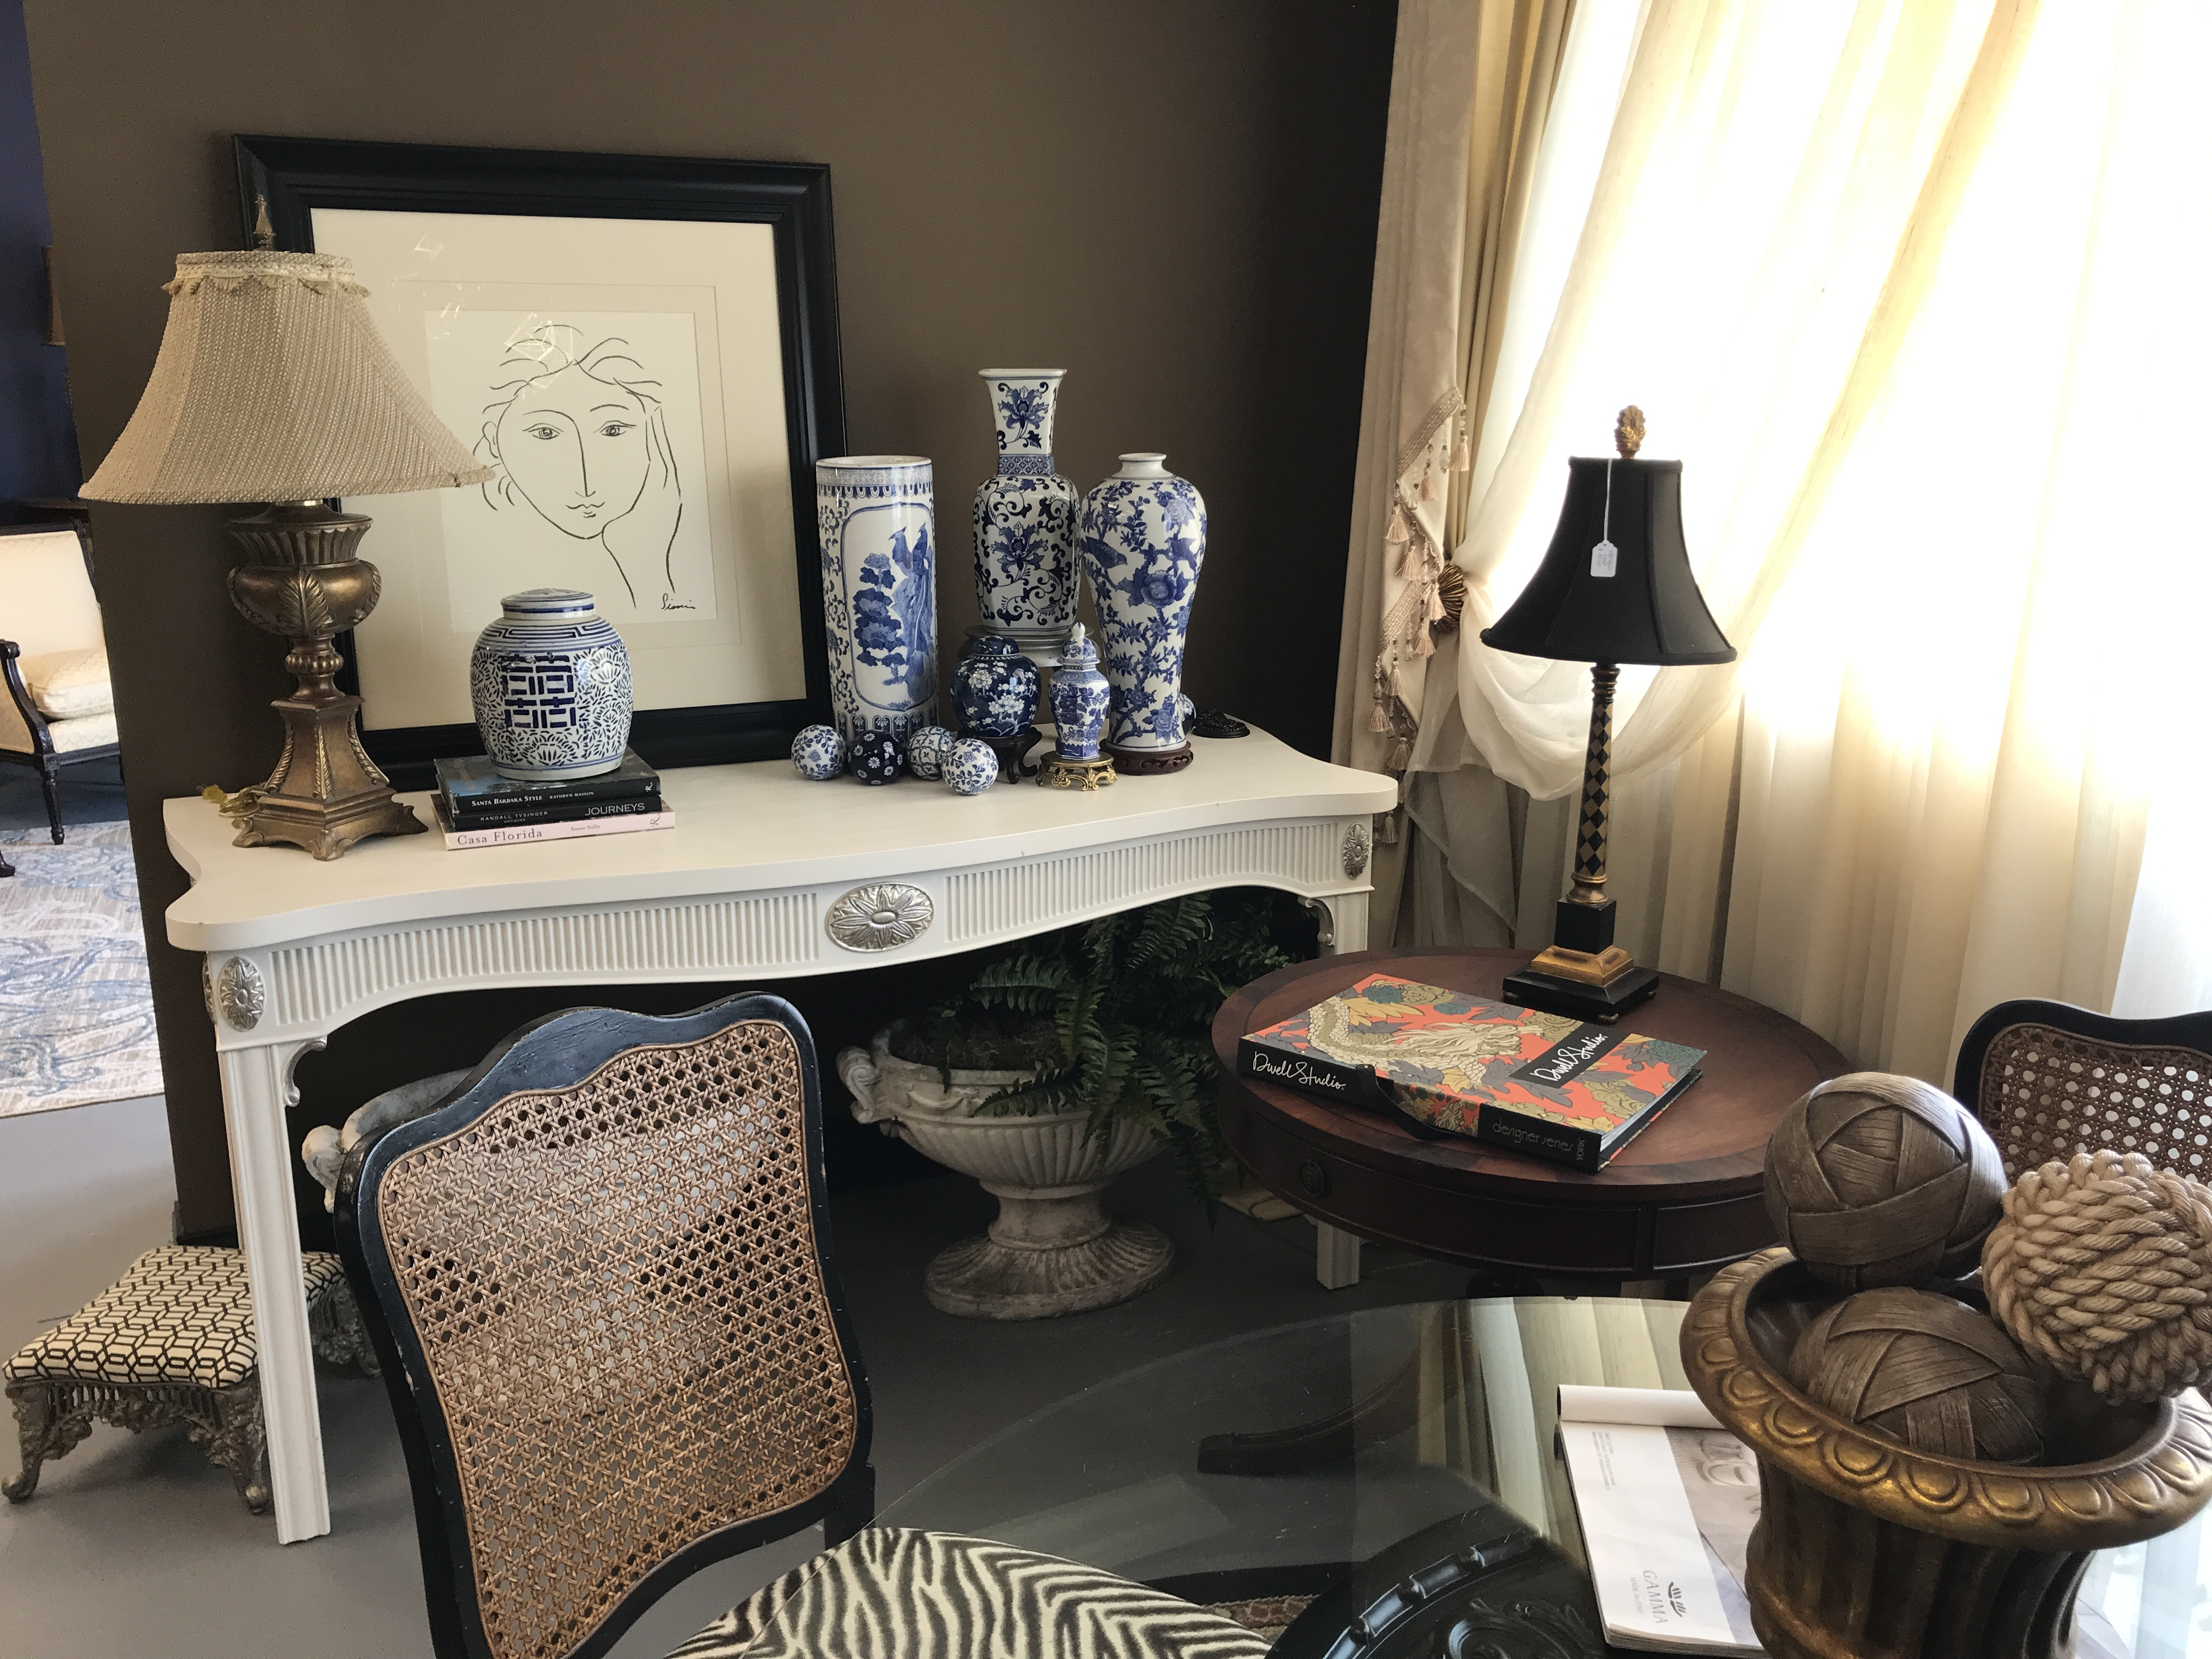 Collection of vases on shelf, upholstered chair, Brevard interior design, MGSD